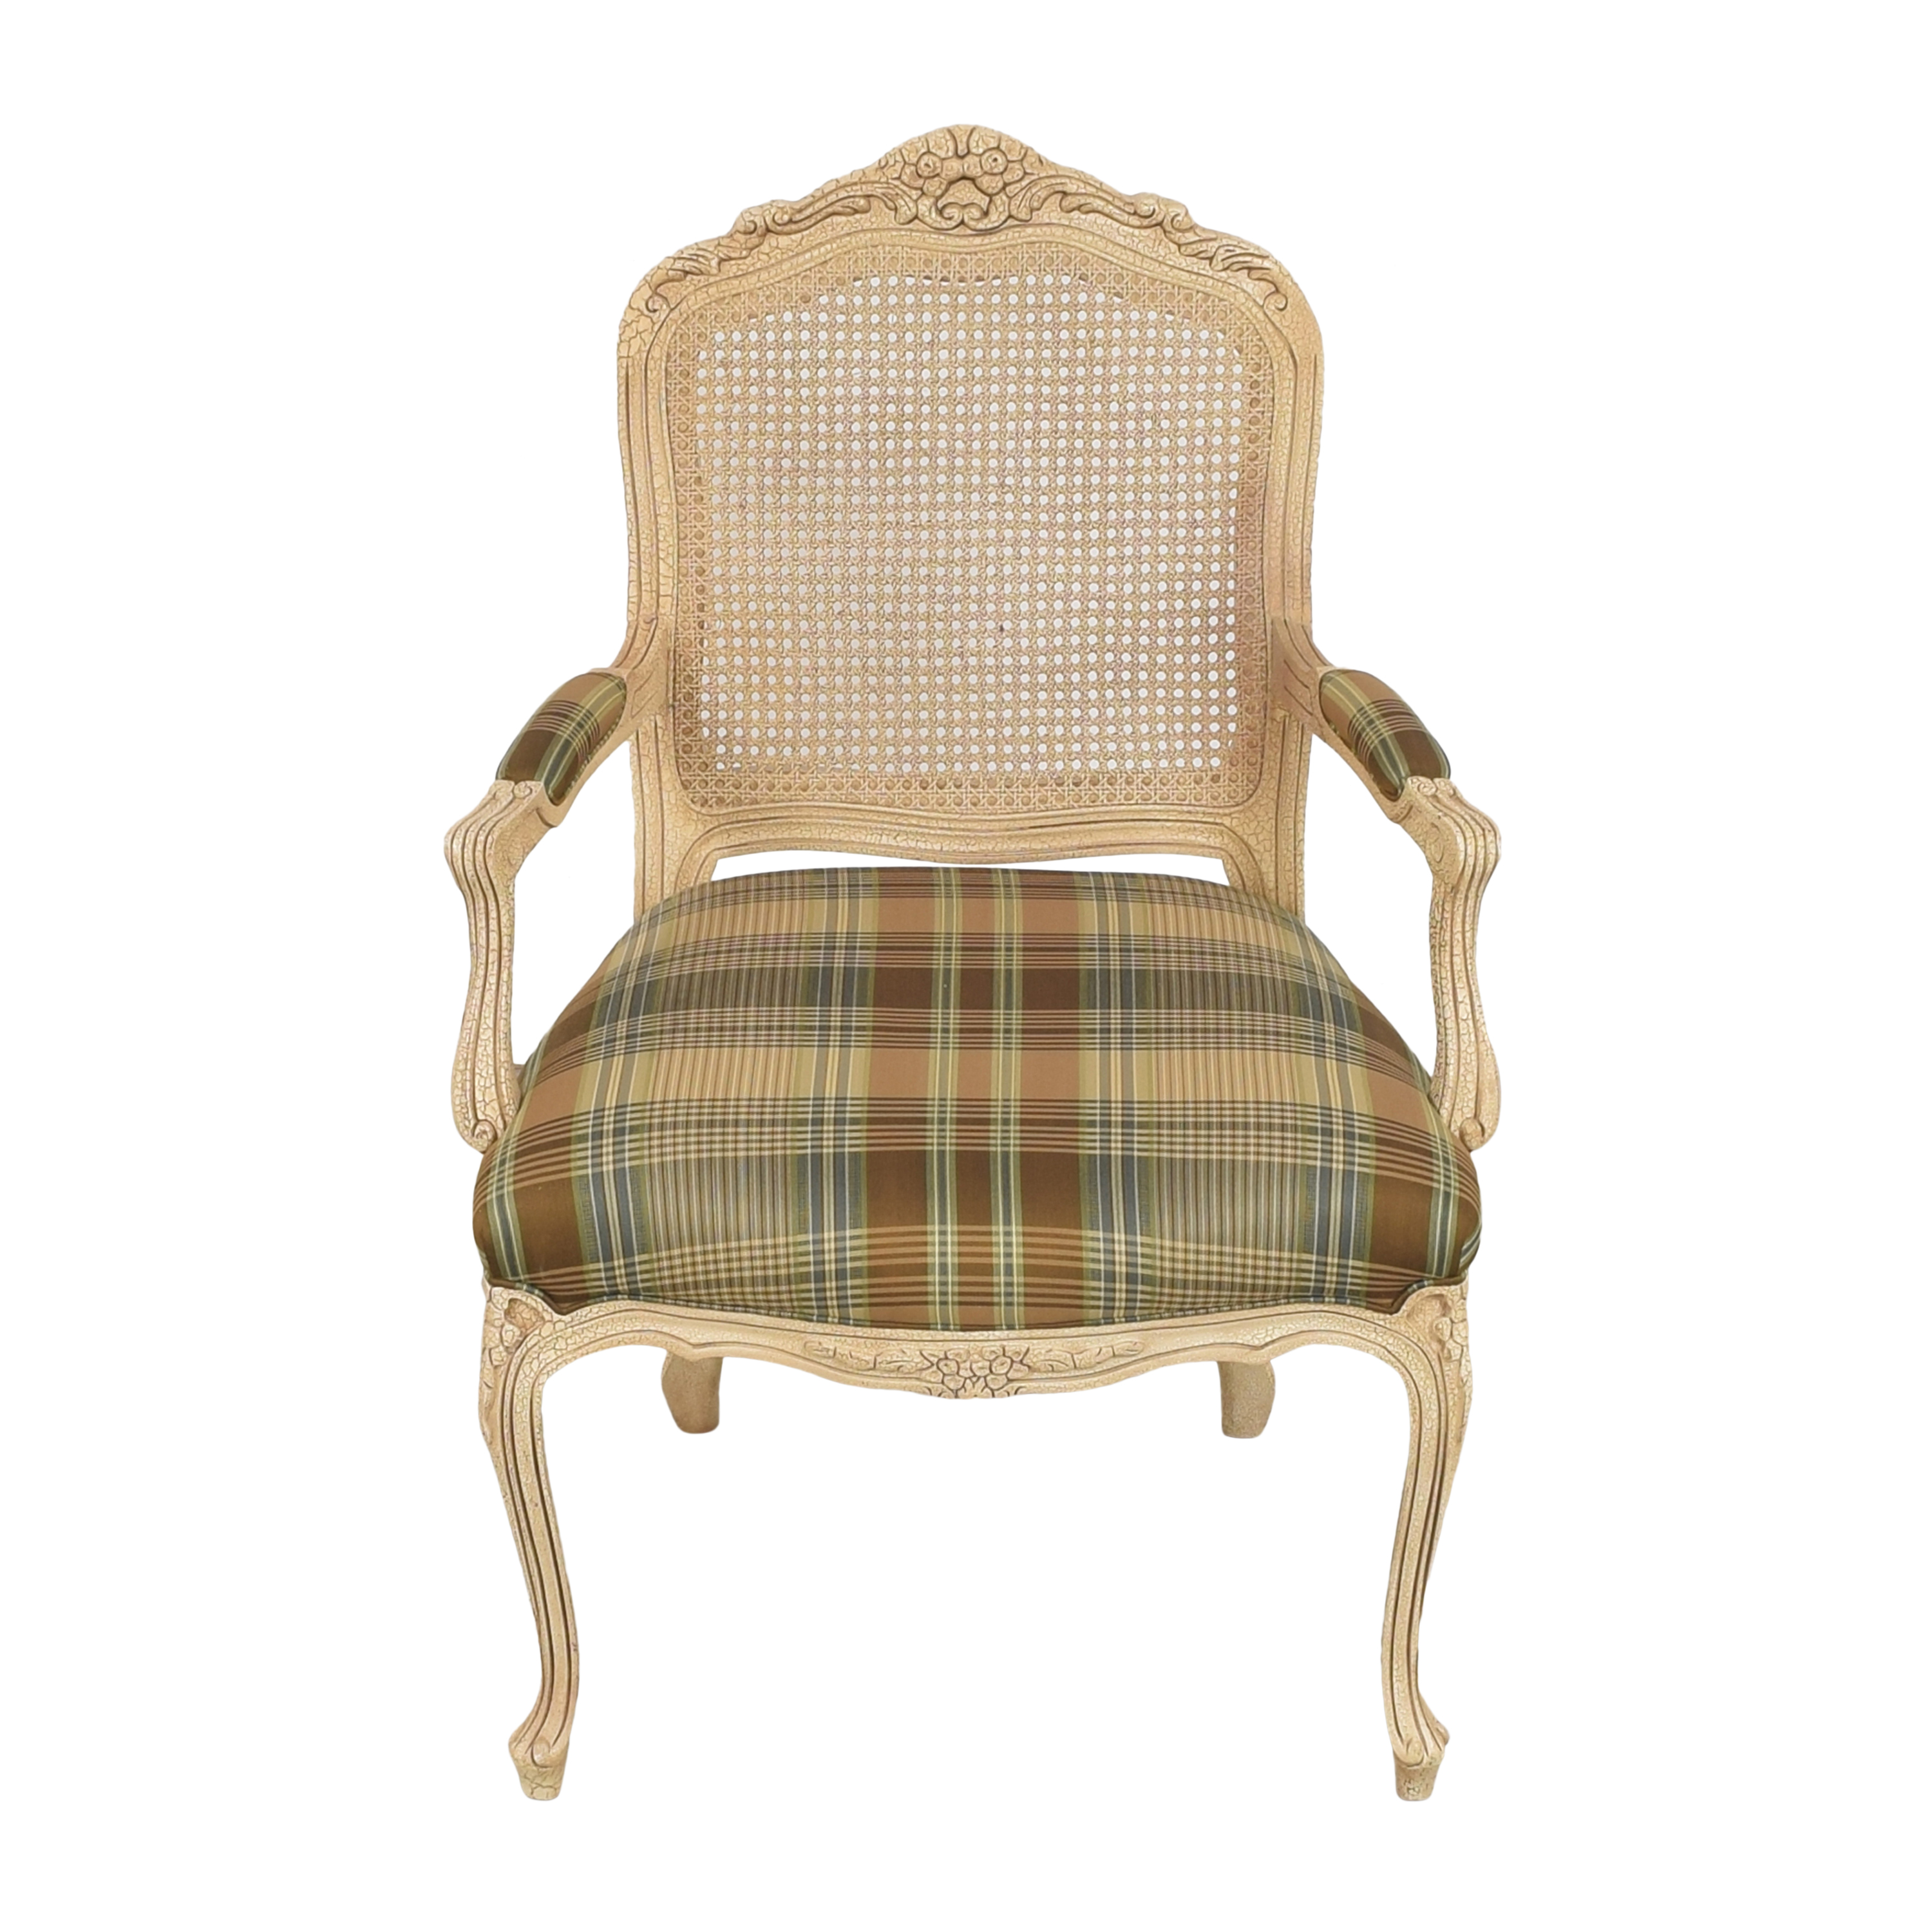 Hancock and Moore Hancock and Moore Plaid Seat Arm Chair Chairs